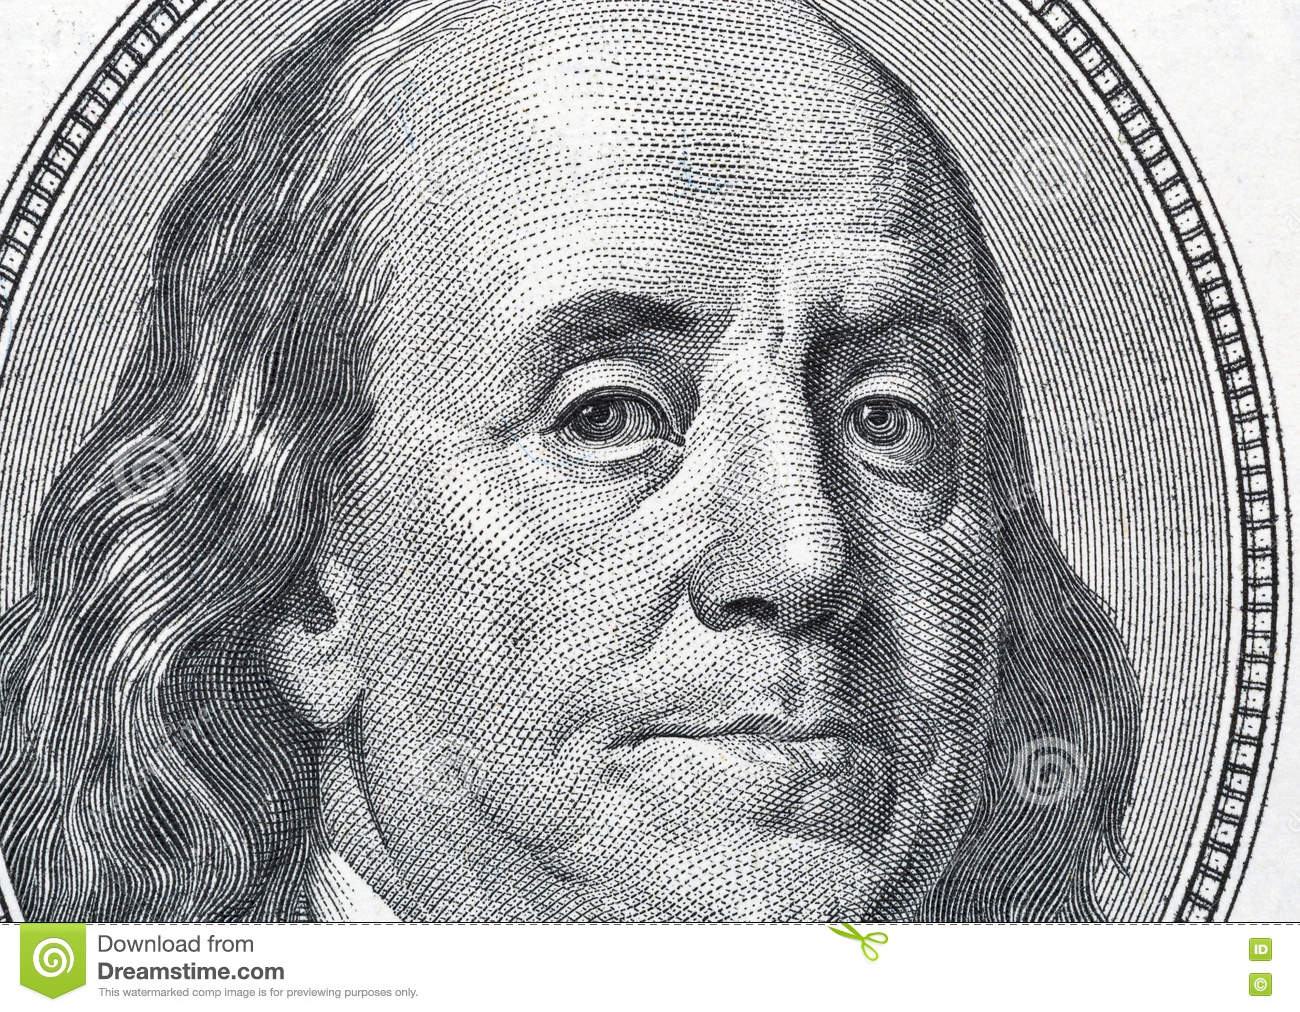 Retrato de Benjamin Franklin en cientos primers del billete de dólar